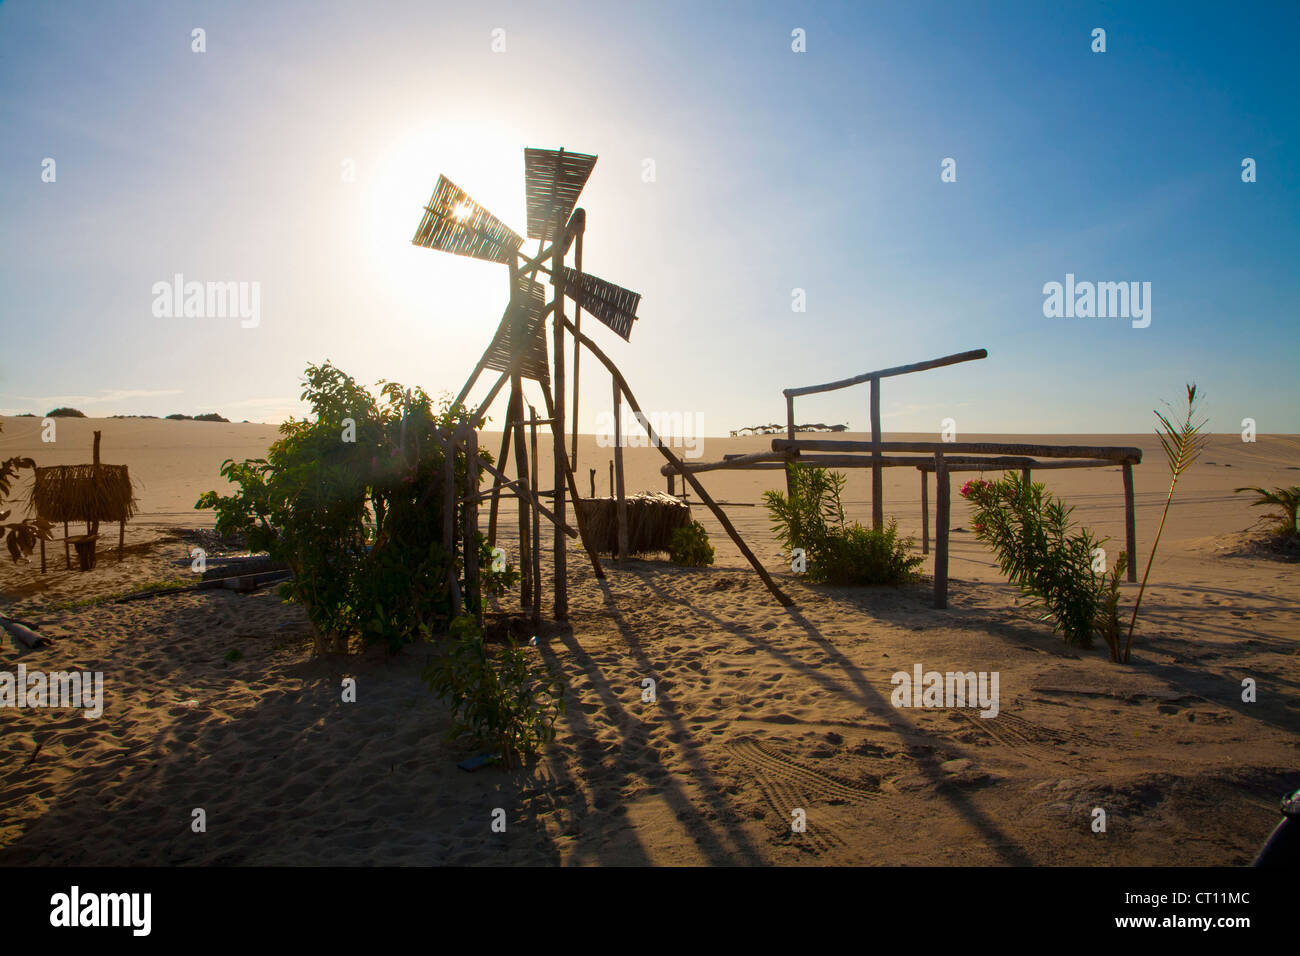 Dilapidated windmill in desert - Stock Image